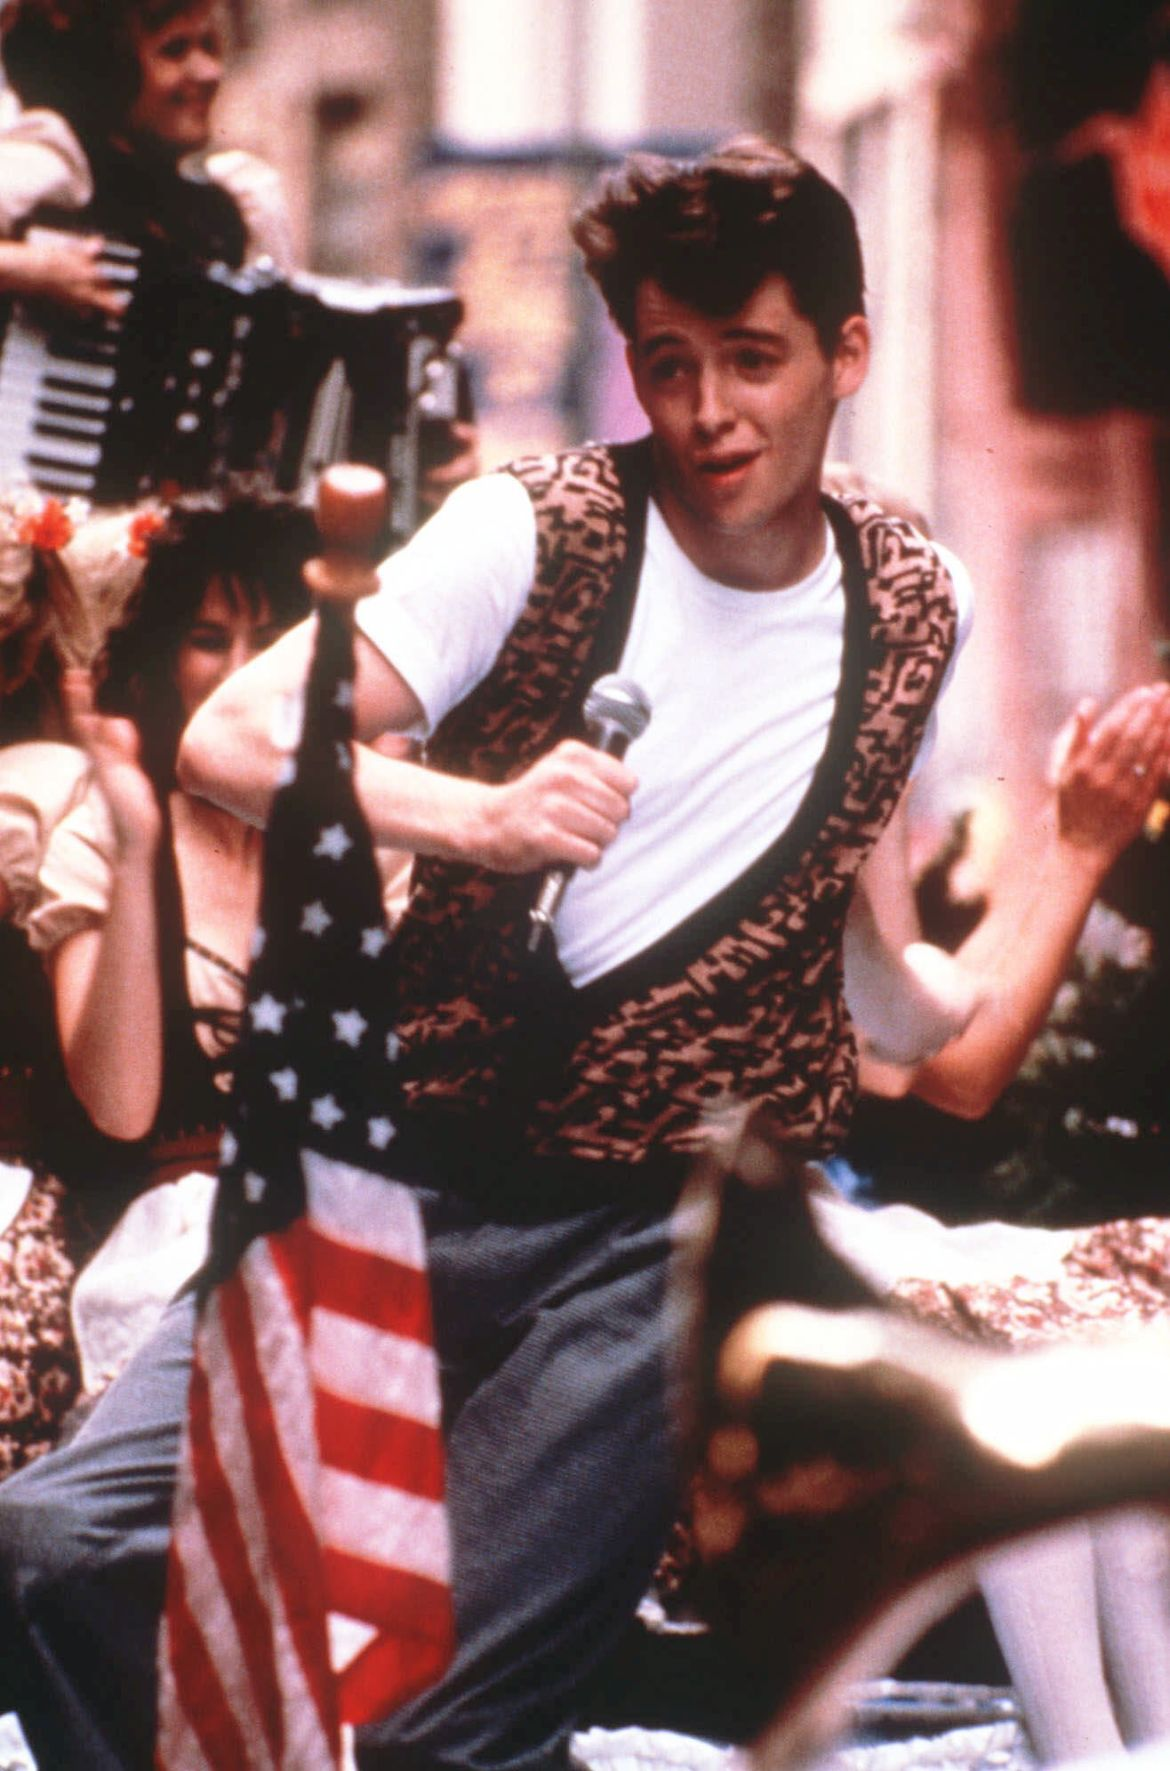 'Classic' '80s films will roll at outdoor screenings